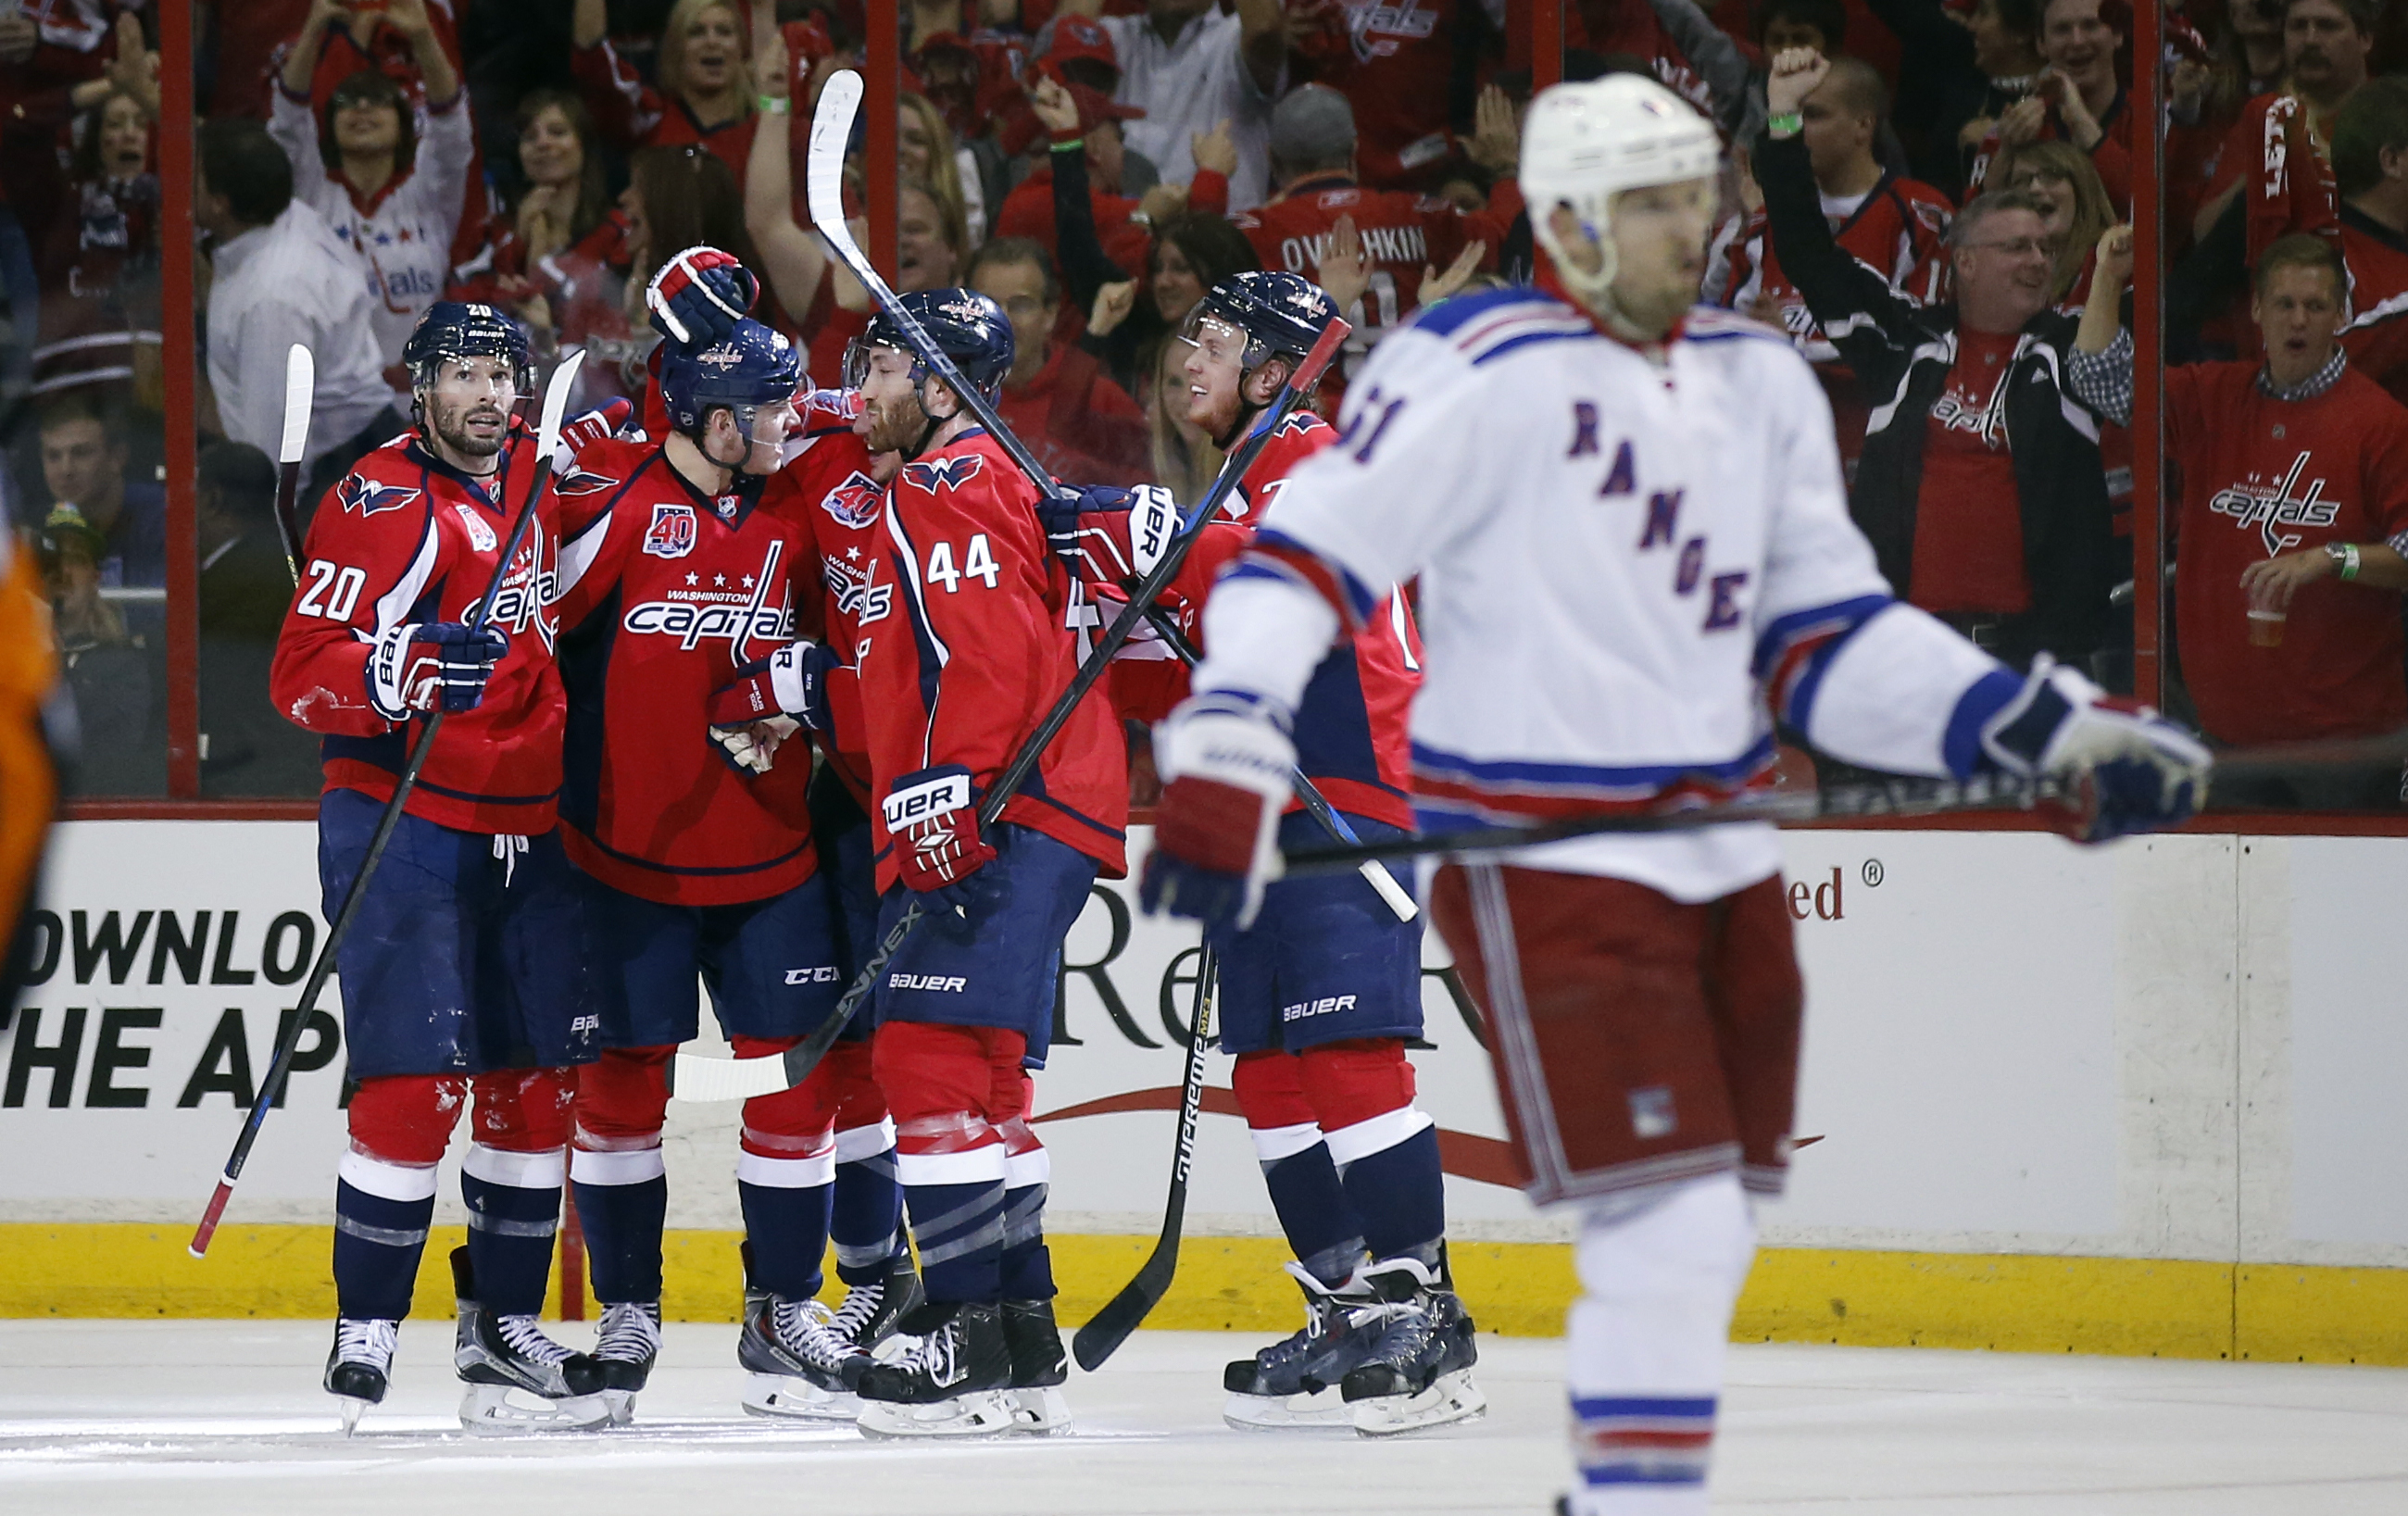 The Washington Capitals celebrate around center Jay Beagle (83) after his goal during the second period of Game 3 in the second round of the NHL Stanley Cup hockey playoffs against the New York Rangers, Monday, May 4, 2015, in Washington. (AP Photo/Alex B